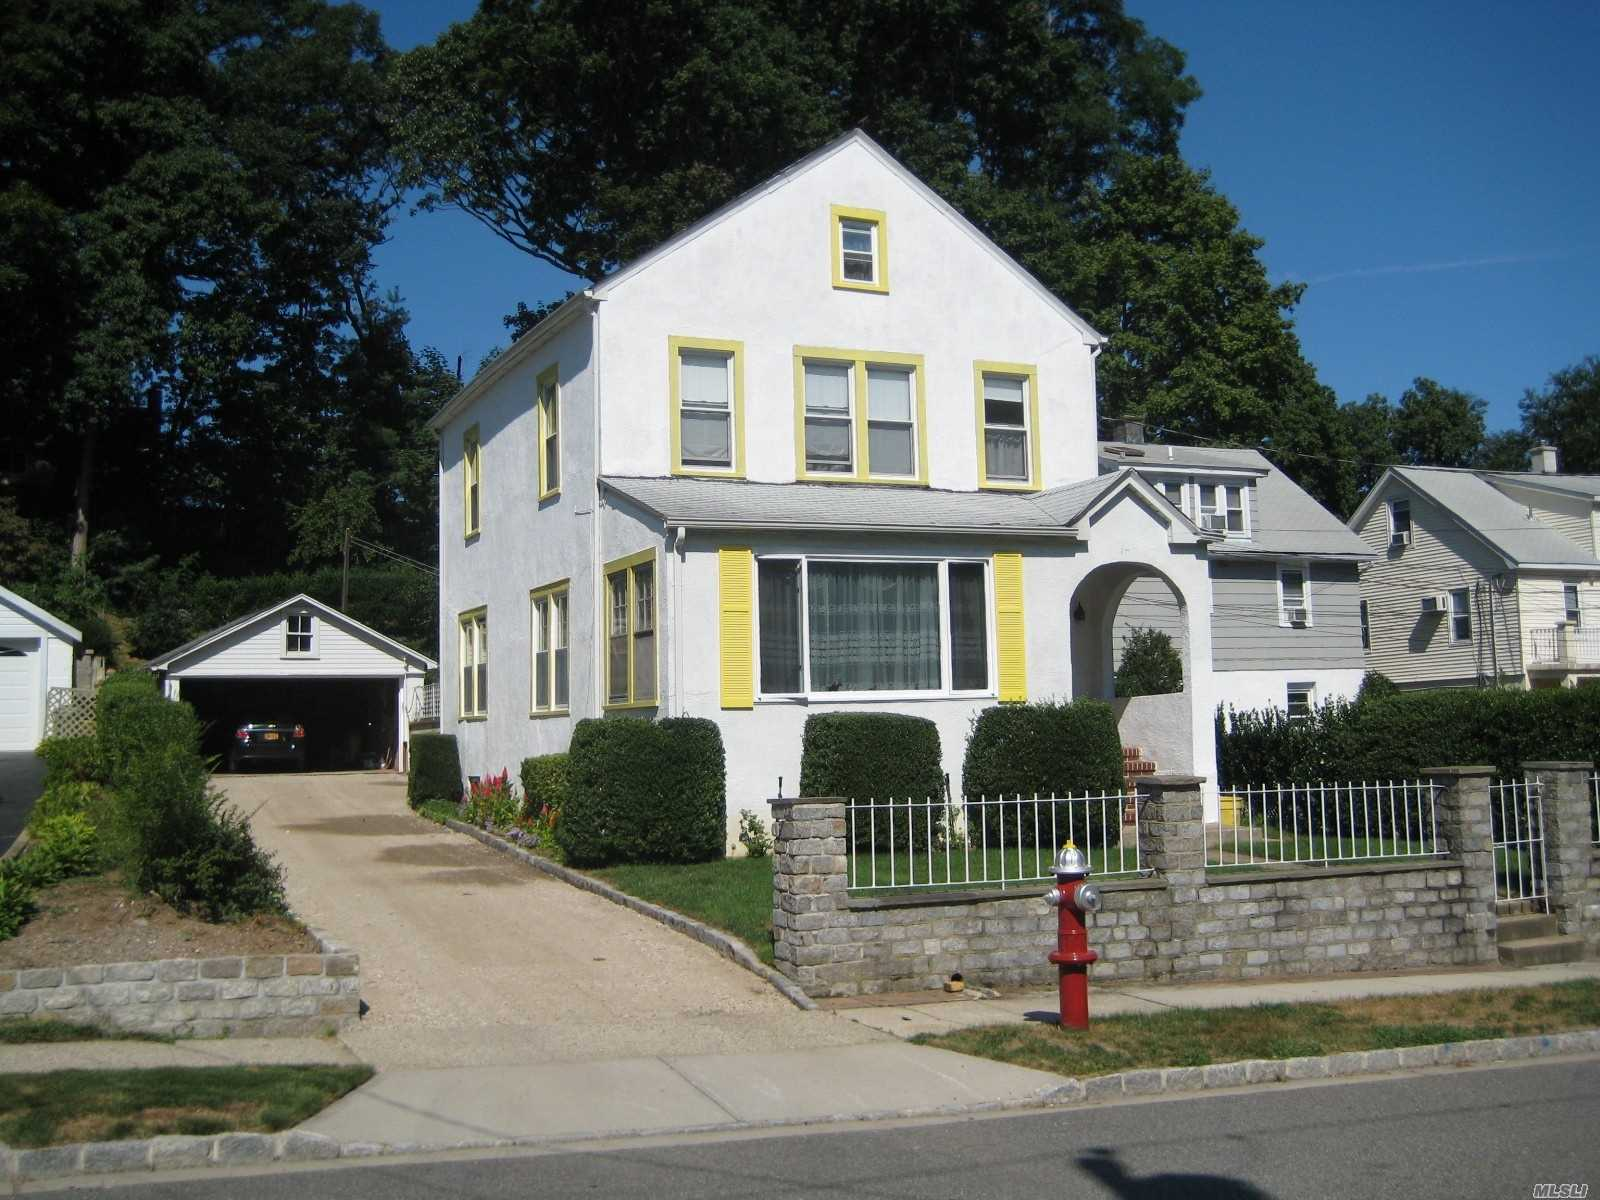 Updated 3 Bedroom Possible 4th Bedroom/Office Colonial with 2 Full Baths. Living Rm, Formal Dining Rm, Eat In Kitchen w/New Appliances. Hardwood Floors. Full 3rd Floor Walk-Up Attic for Storage. Unfinished Basement with Outside Entrance. Gas Stove, Gas Heat, Gas Hot Water. Patio and Beautiful Private Backyard.Two Car Detached Garage w/extra-long Driveway. Close to Beaches, Shopping, Transportation, Offices, Restaurants. Old-World Charm with Modern Amenities.